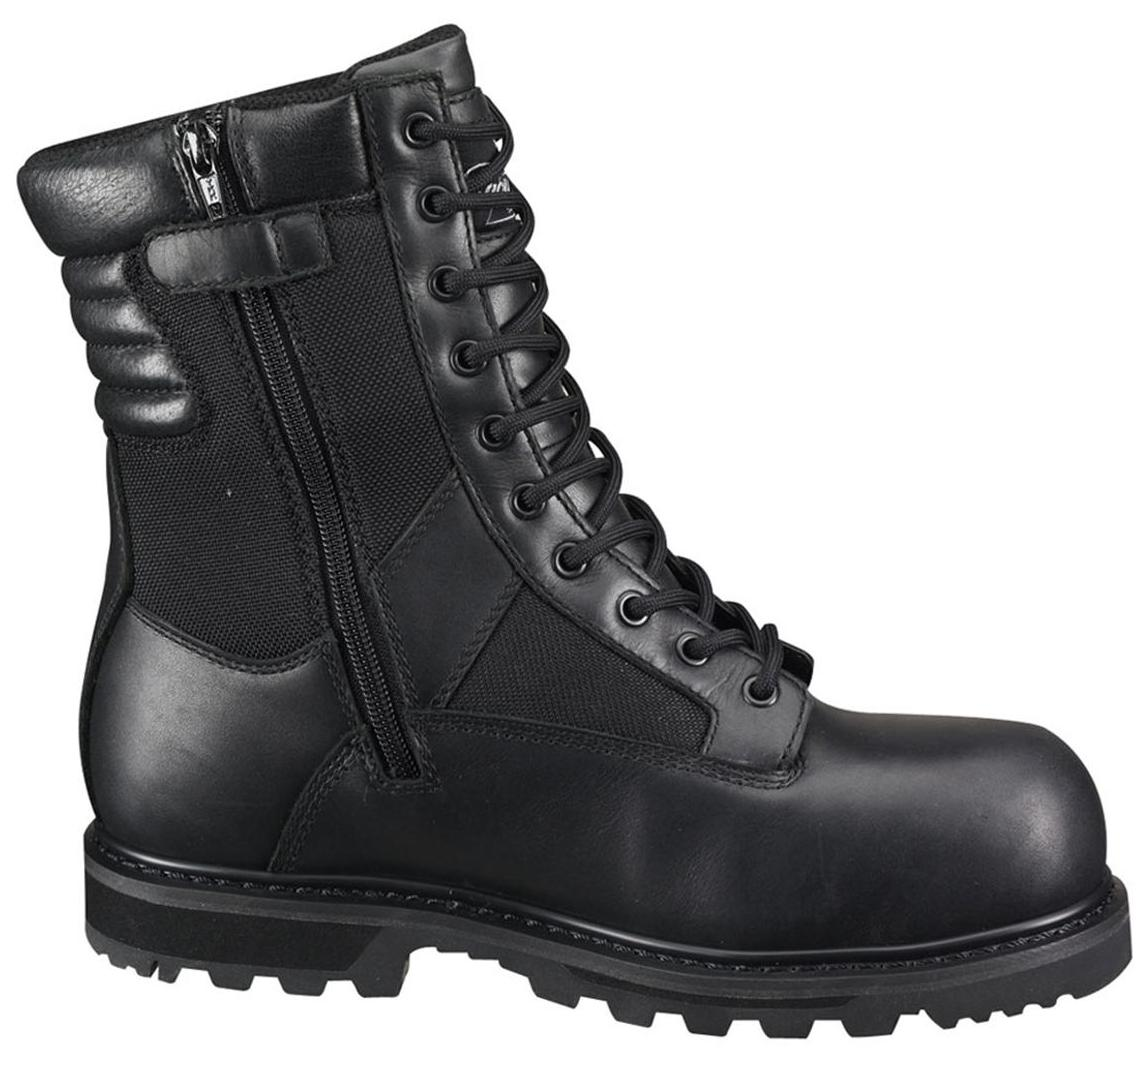 Best Police Boots Review 2016 | Authorized Boots